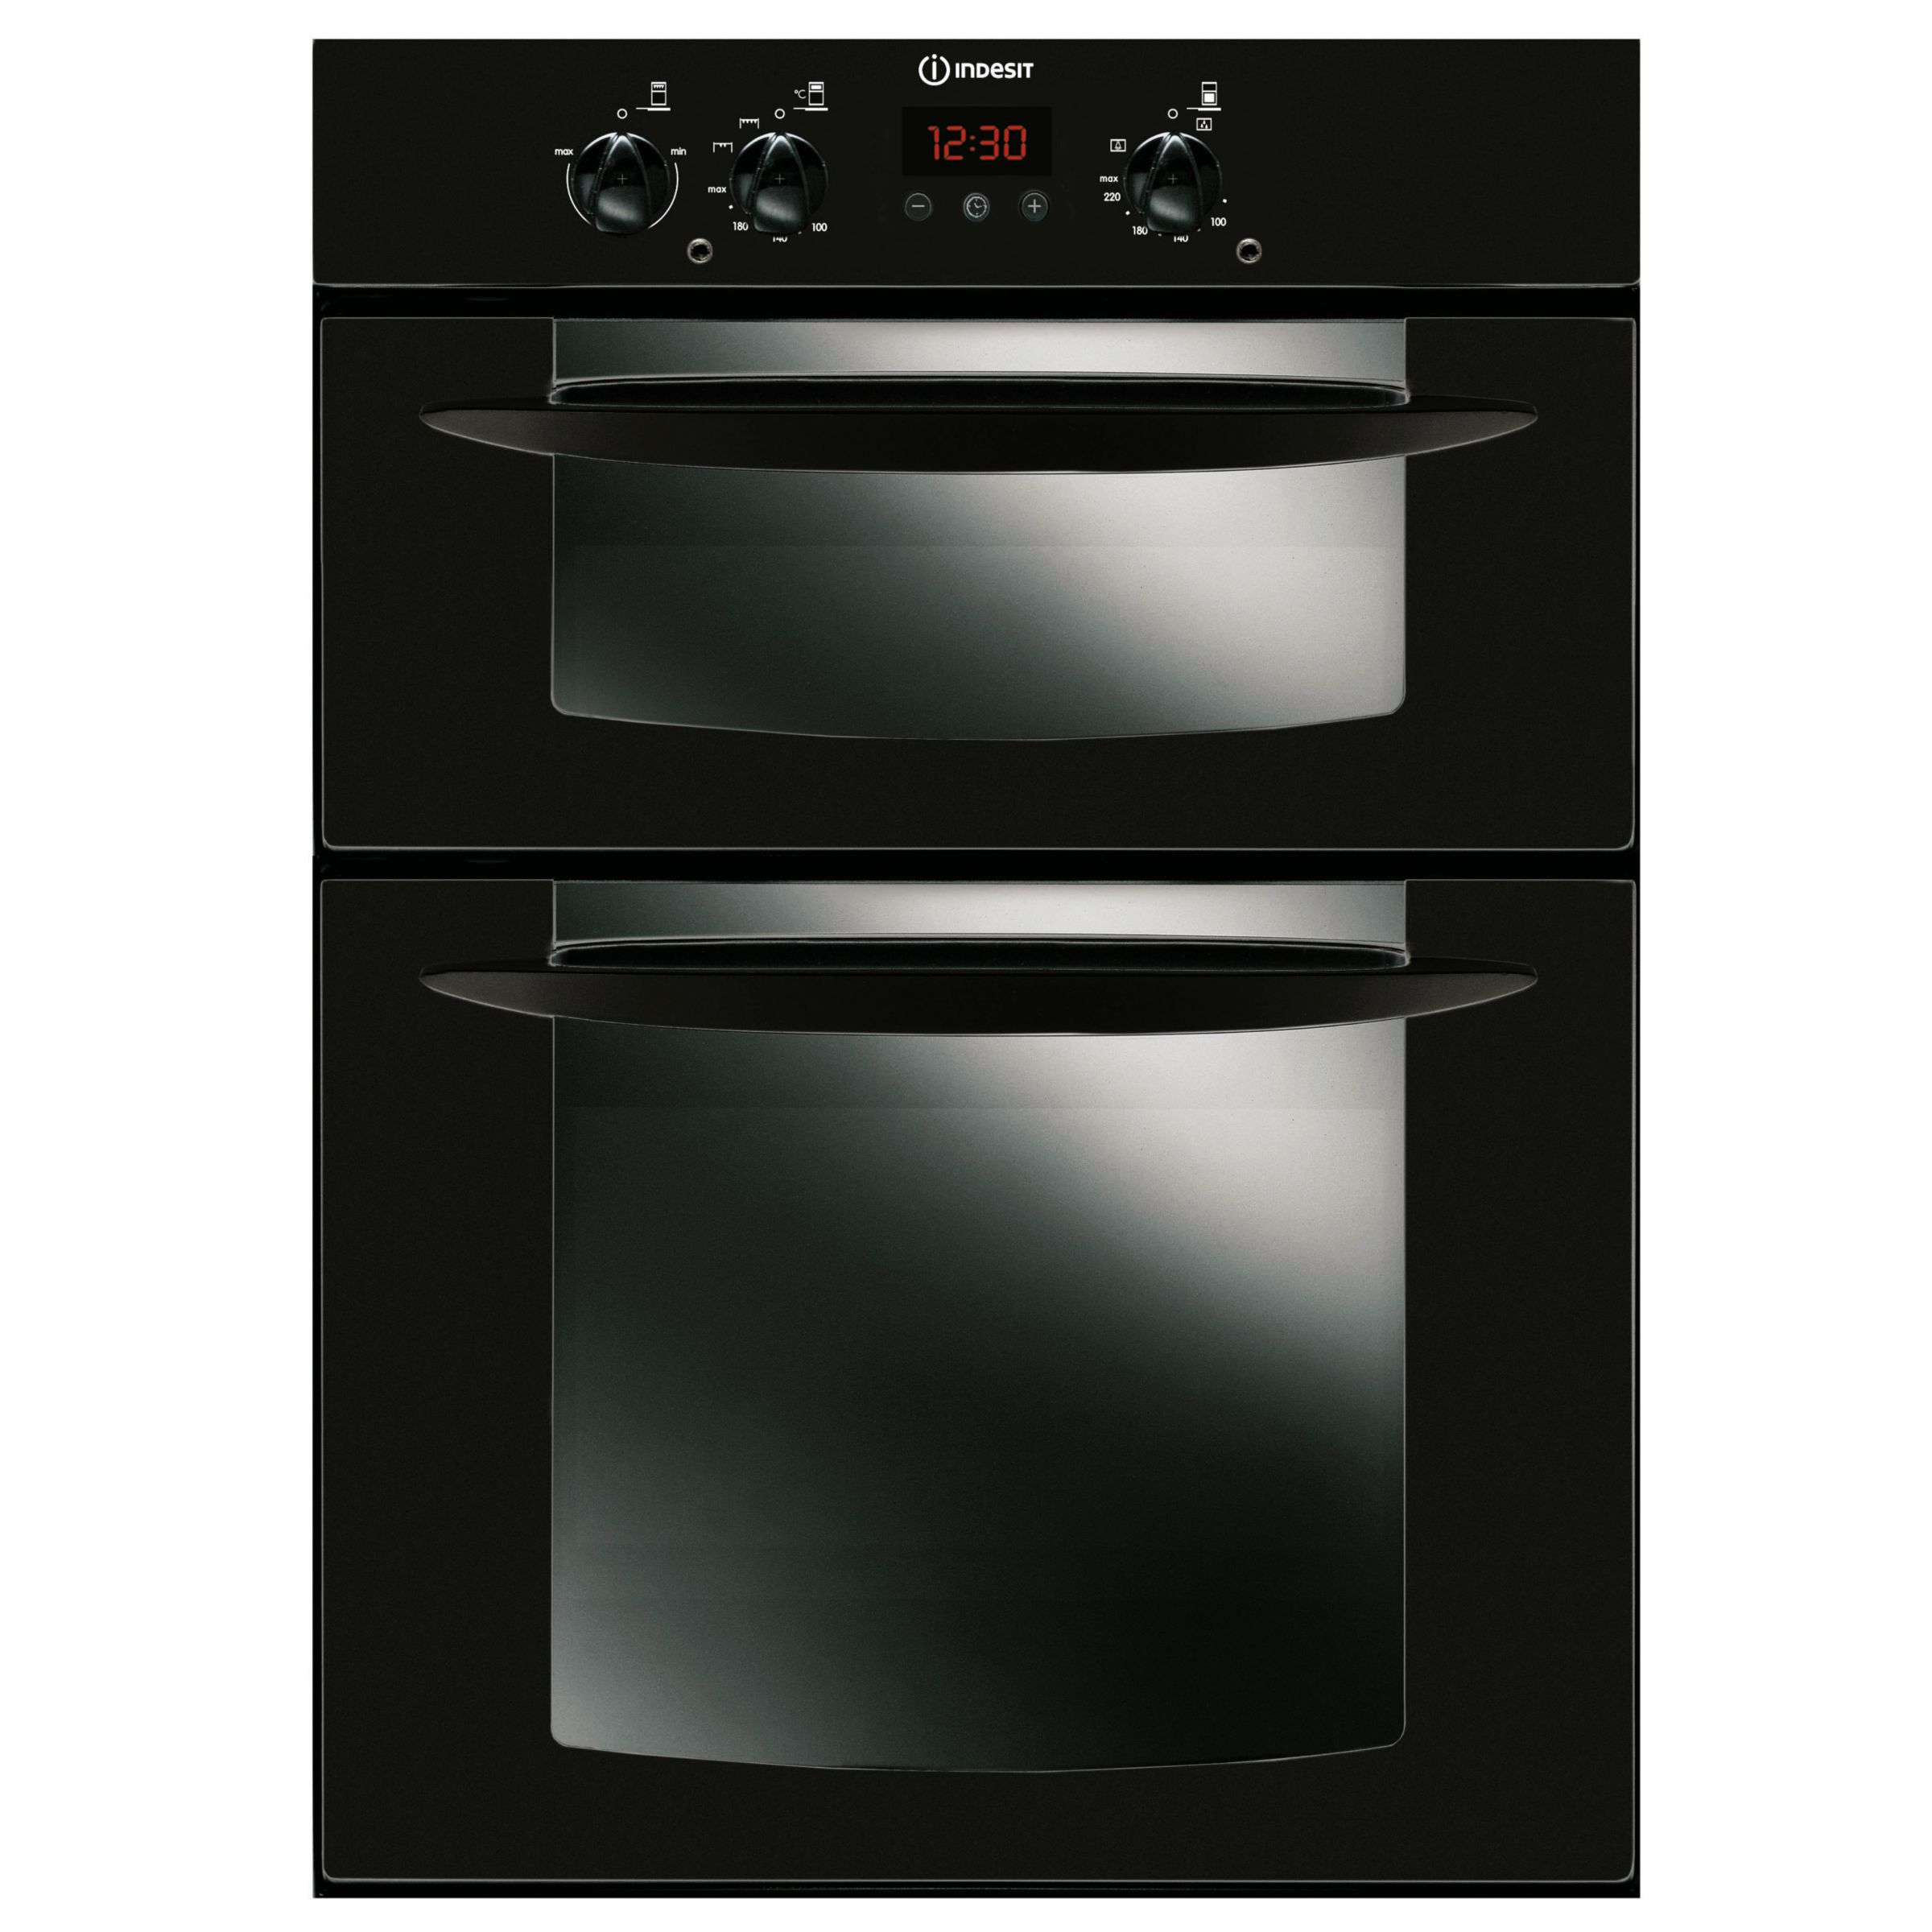 Indesit FID20BK Double Electric Oven, Black at JohnLewis